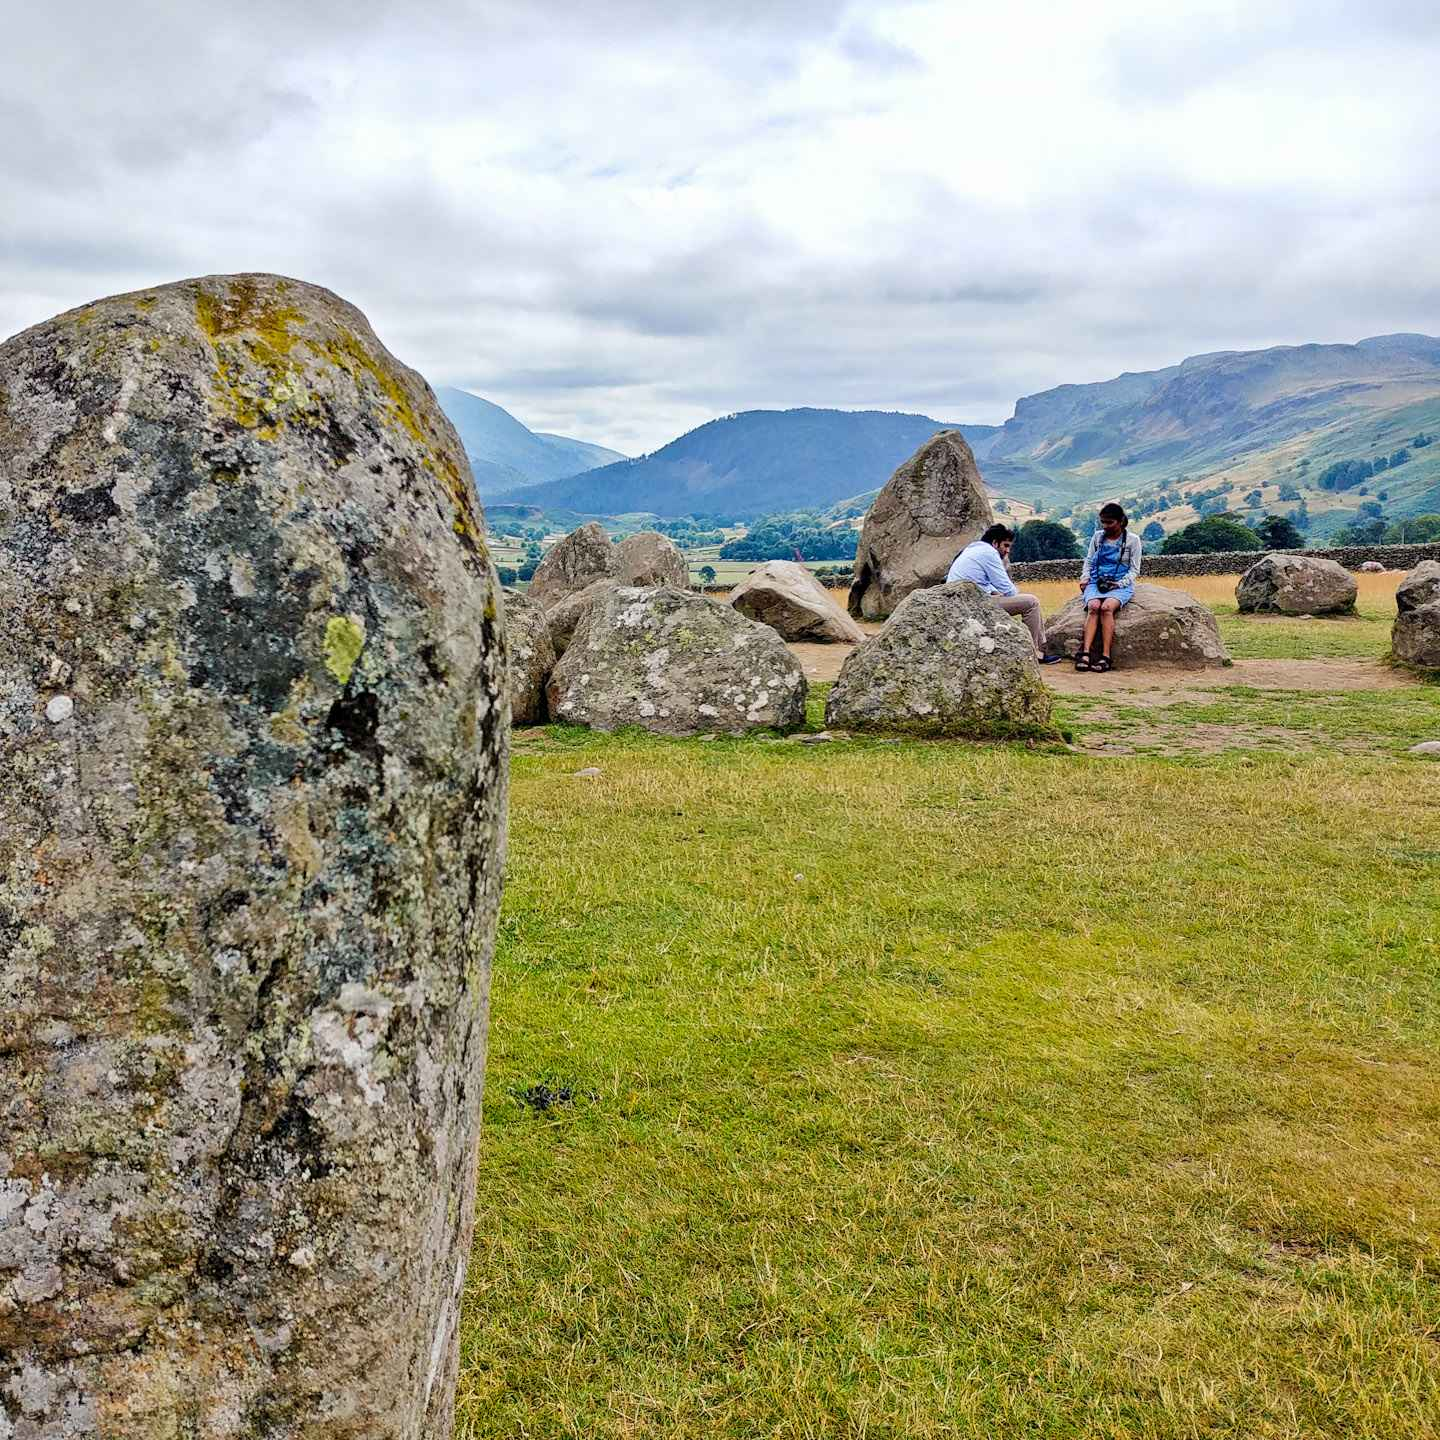 I only had my phone and 15 minutes, so how did I get some nice photos of Castlerigg Stone Circle in the Lake District? Photography tips and visitor info. Taking photos at Castlerigg Stone Circle in the Lake District on Falcondale Life blog. Image description: high contrast image of part of Castlerigg Stone Circle, the landscape beyond and tourists